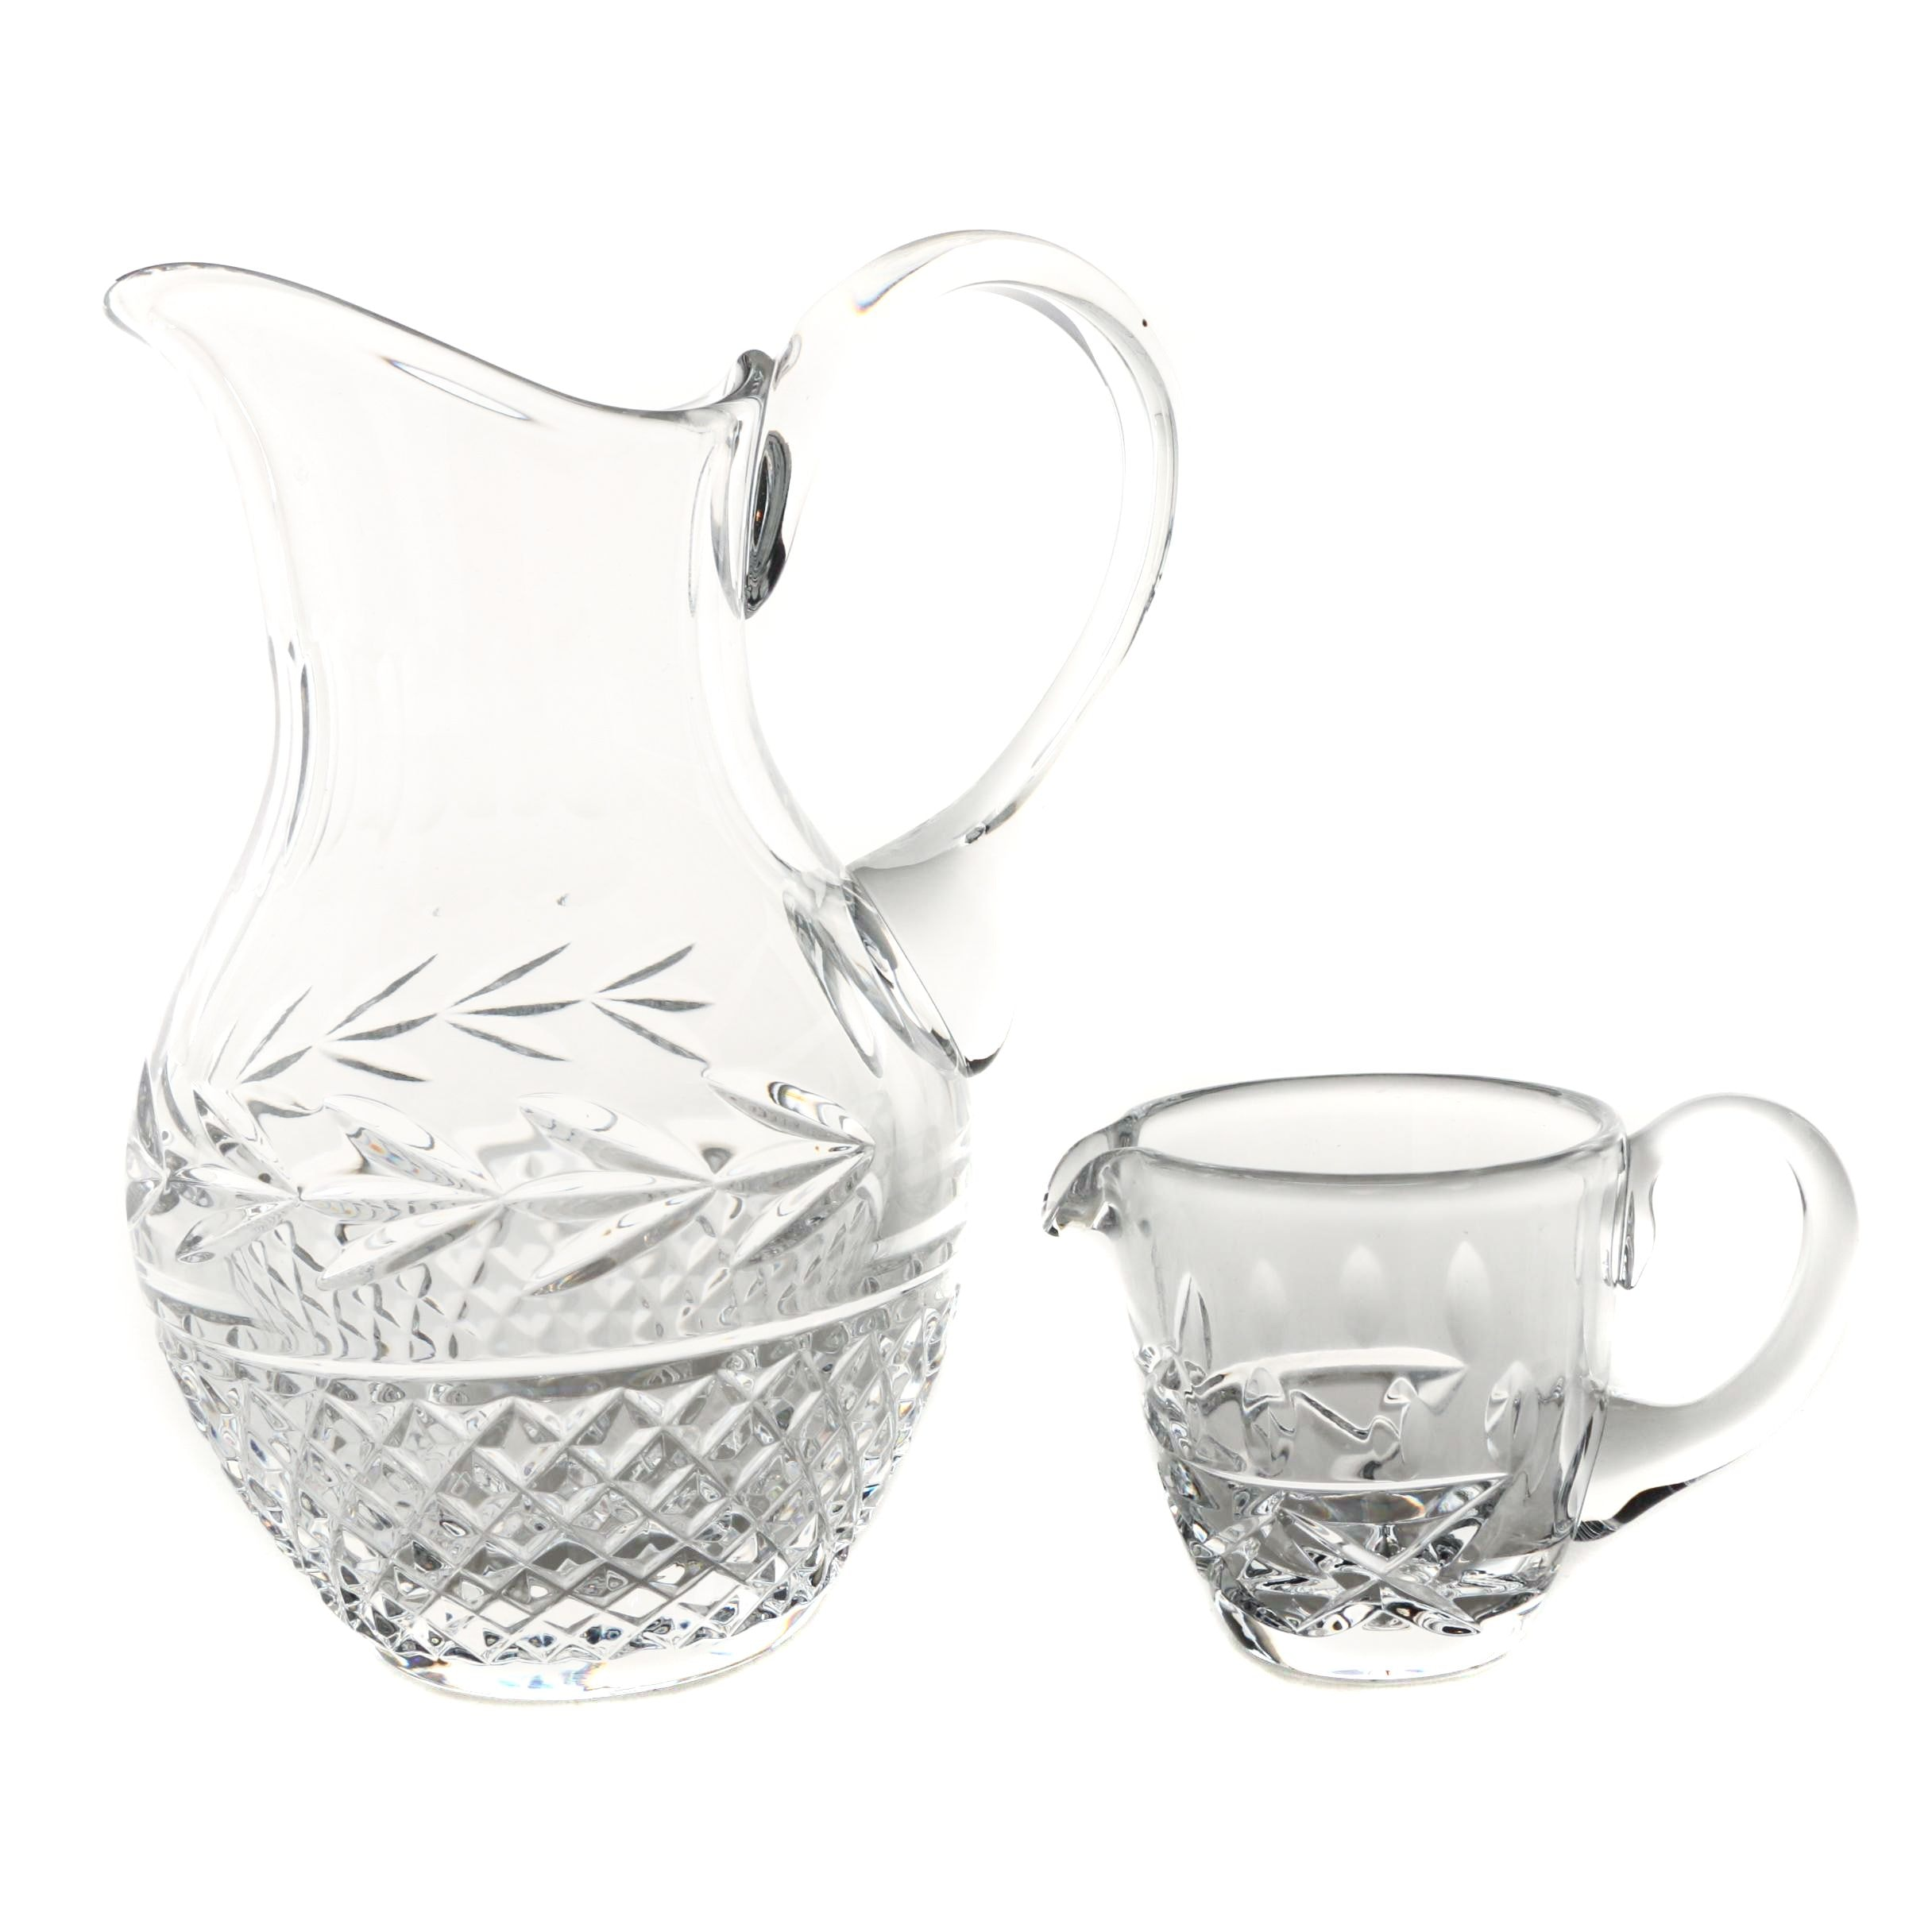 "Galway Irish Crystal ""Leah"" Pitcher and Creamer"